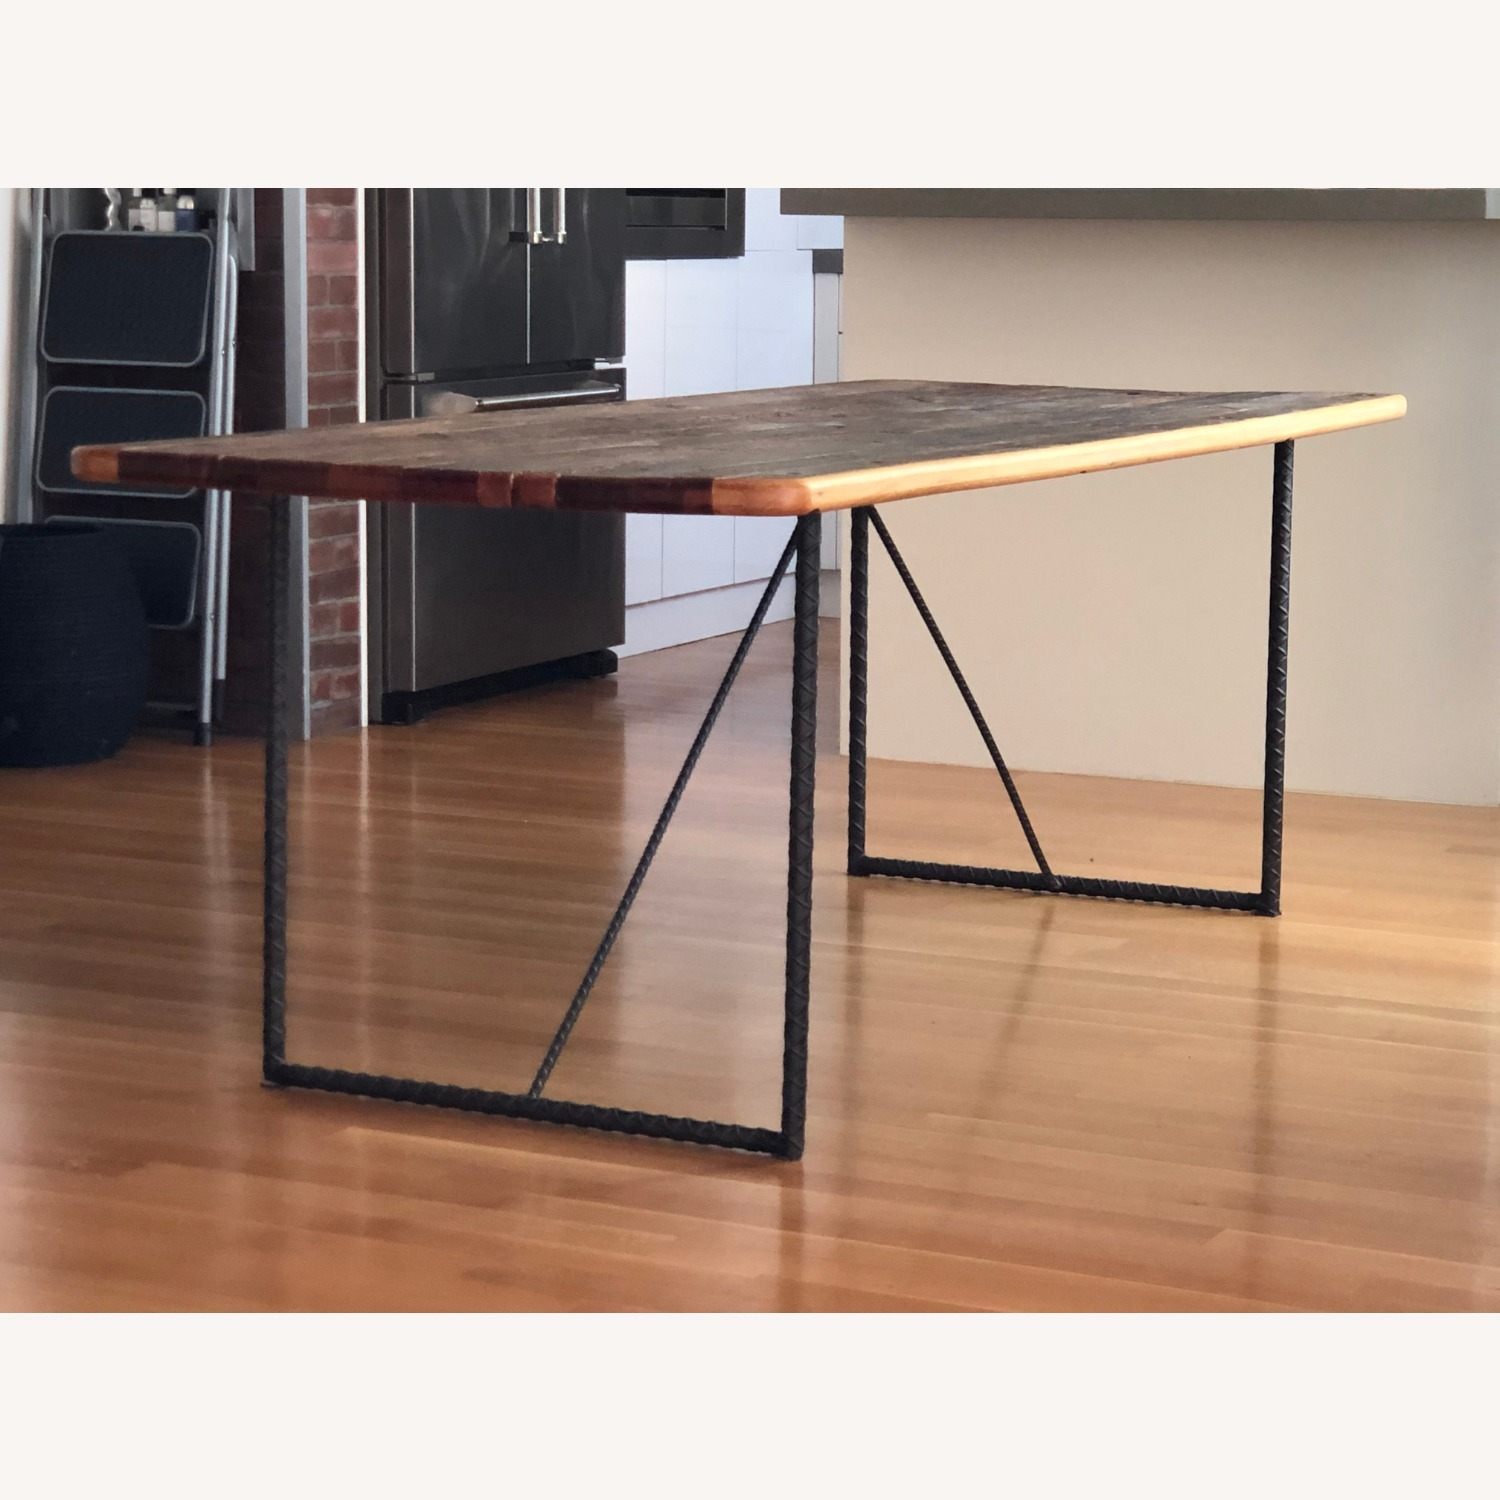 ABC Carpet & Home Dining Table - image-1